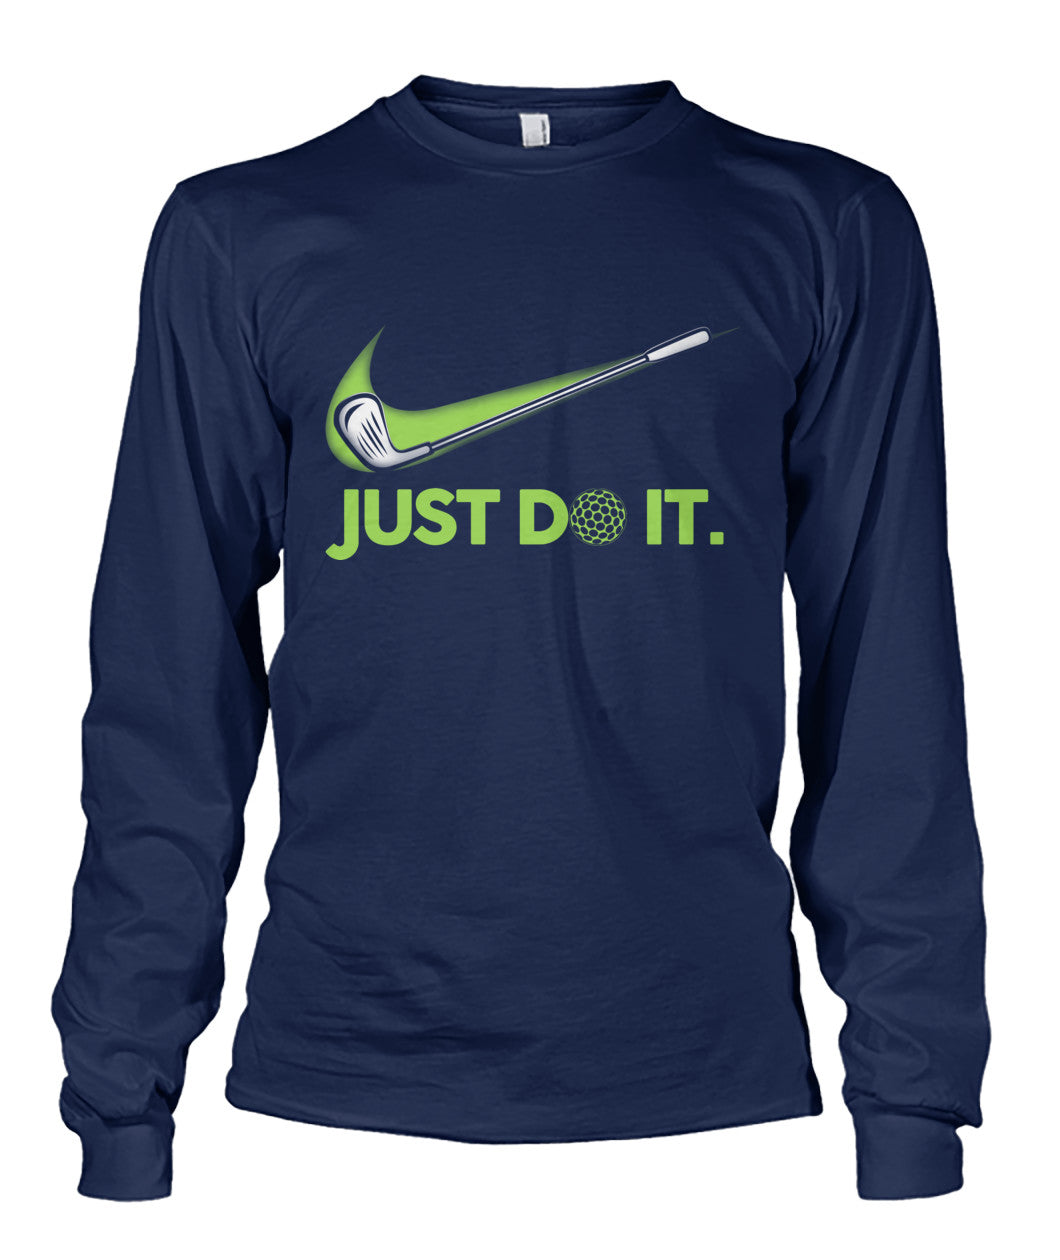 Just DO IT Golf shirt Unisex Long Sleeve